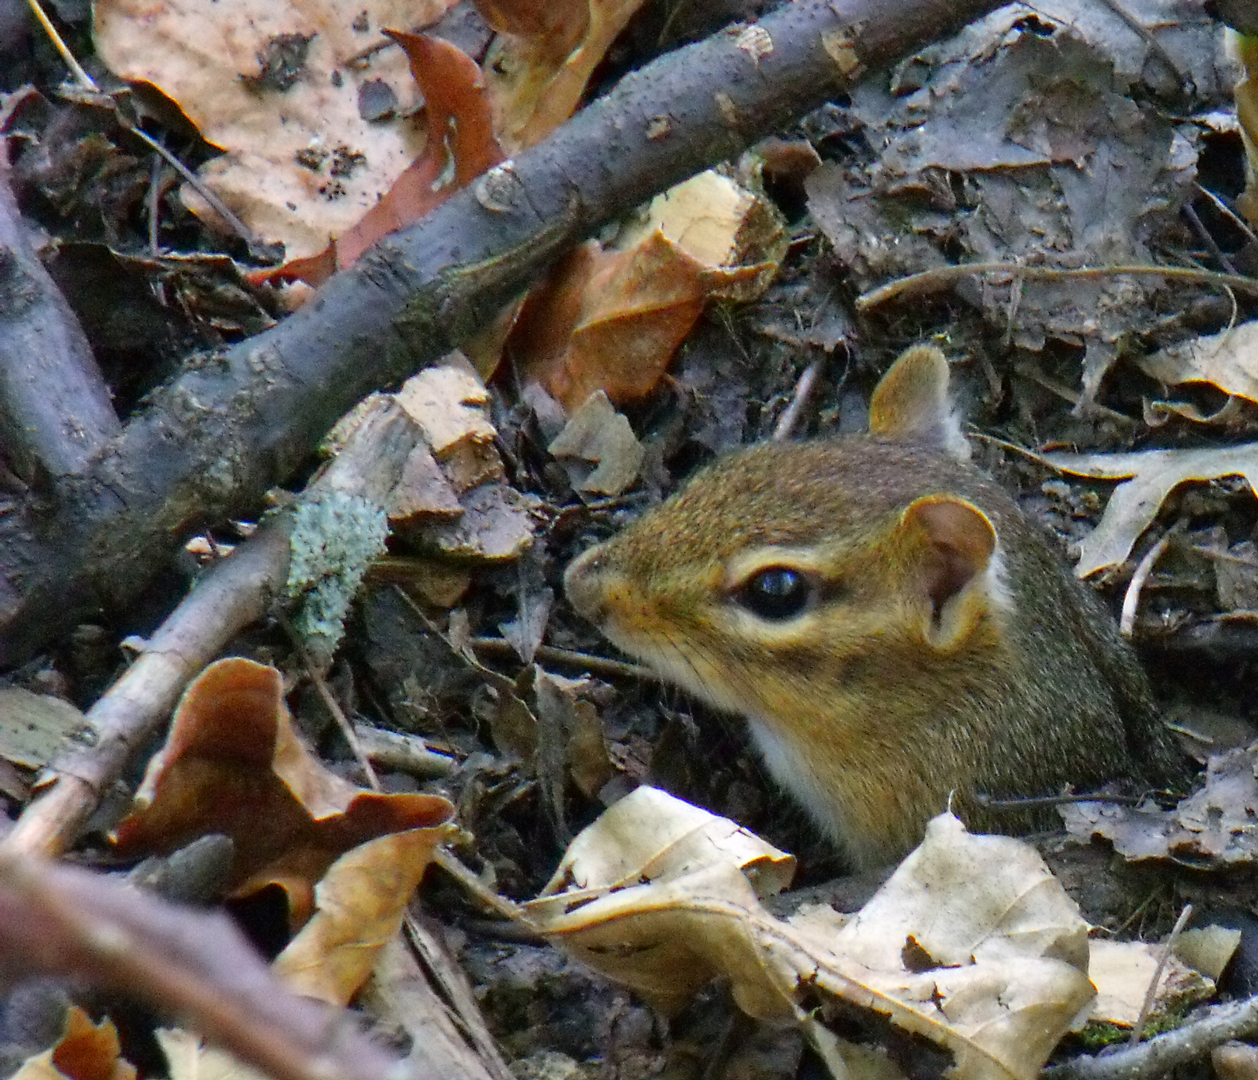 Insects are the usual residents of leaf litter, but here a chipmunk peeks its head above a stretch of leaf litter at Blacklick Woods.